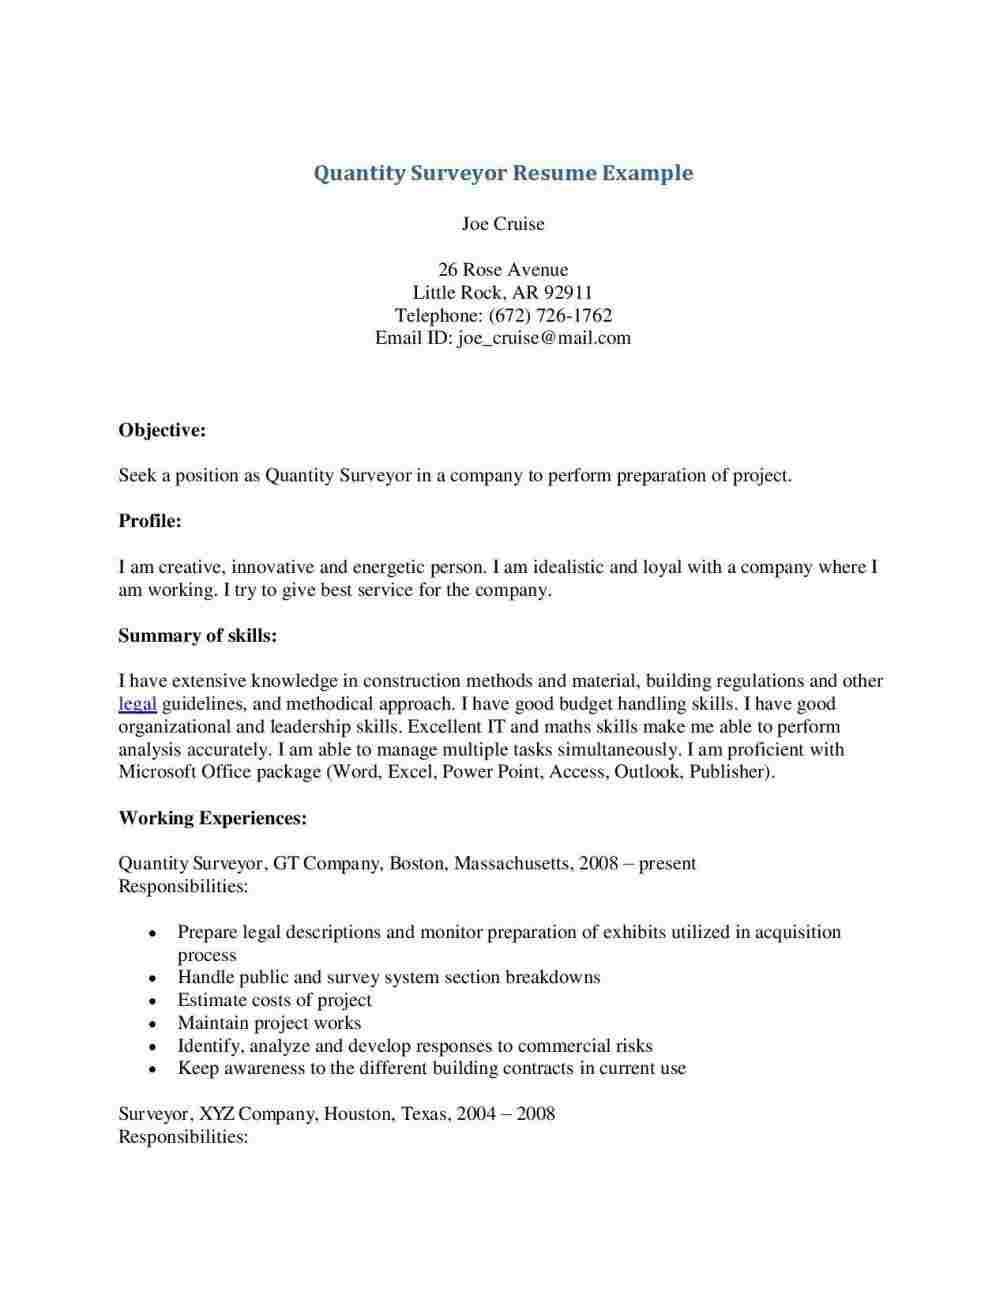 Cover Letter Template Quantity Surveyor | My Style | Online ...